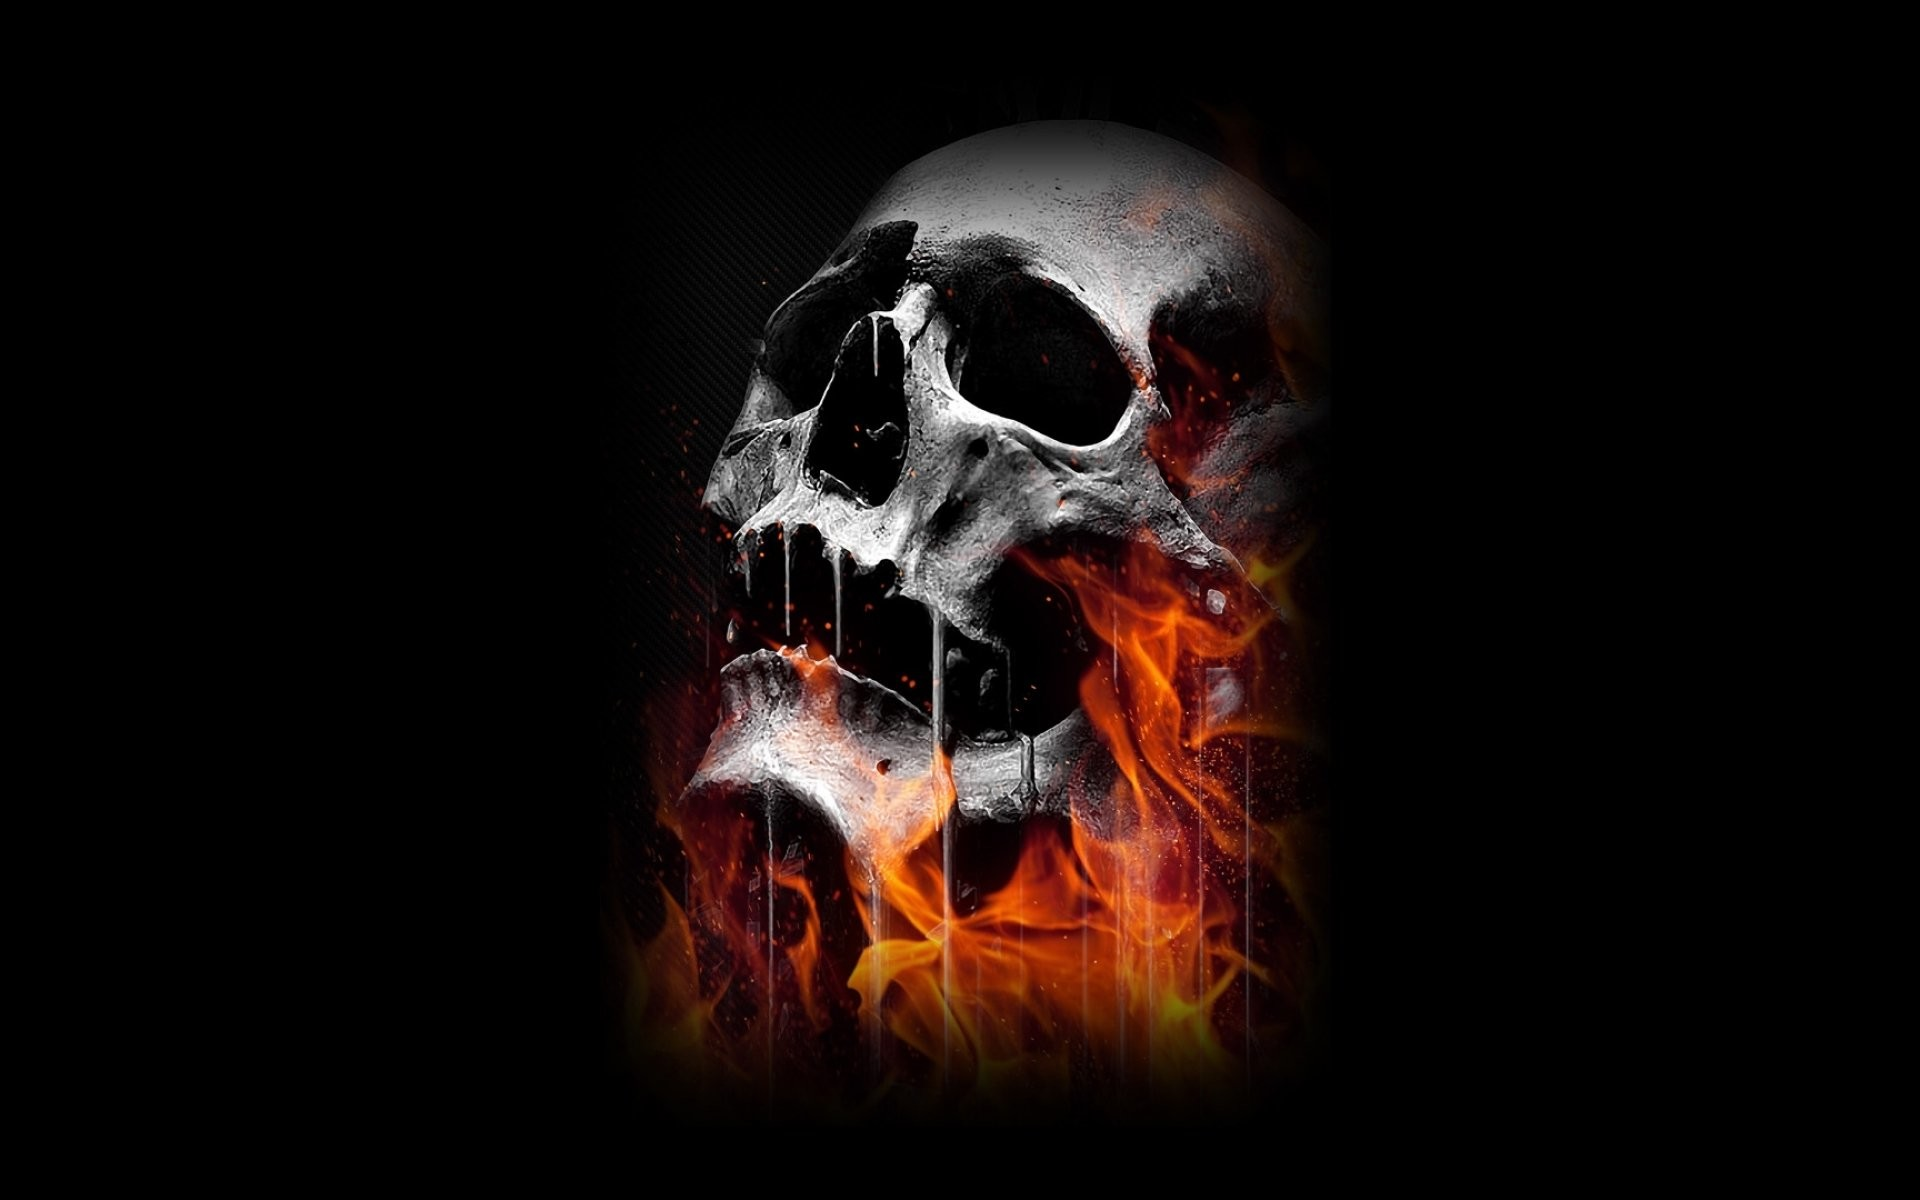 Evil Skull wallpapers   HD wallpaper Collections   4kwallpaperwiki 1920x1200